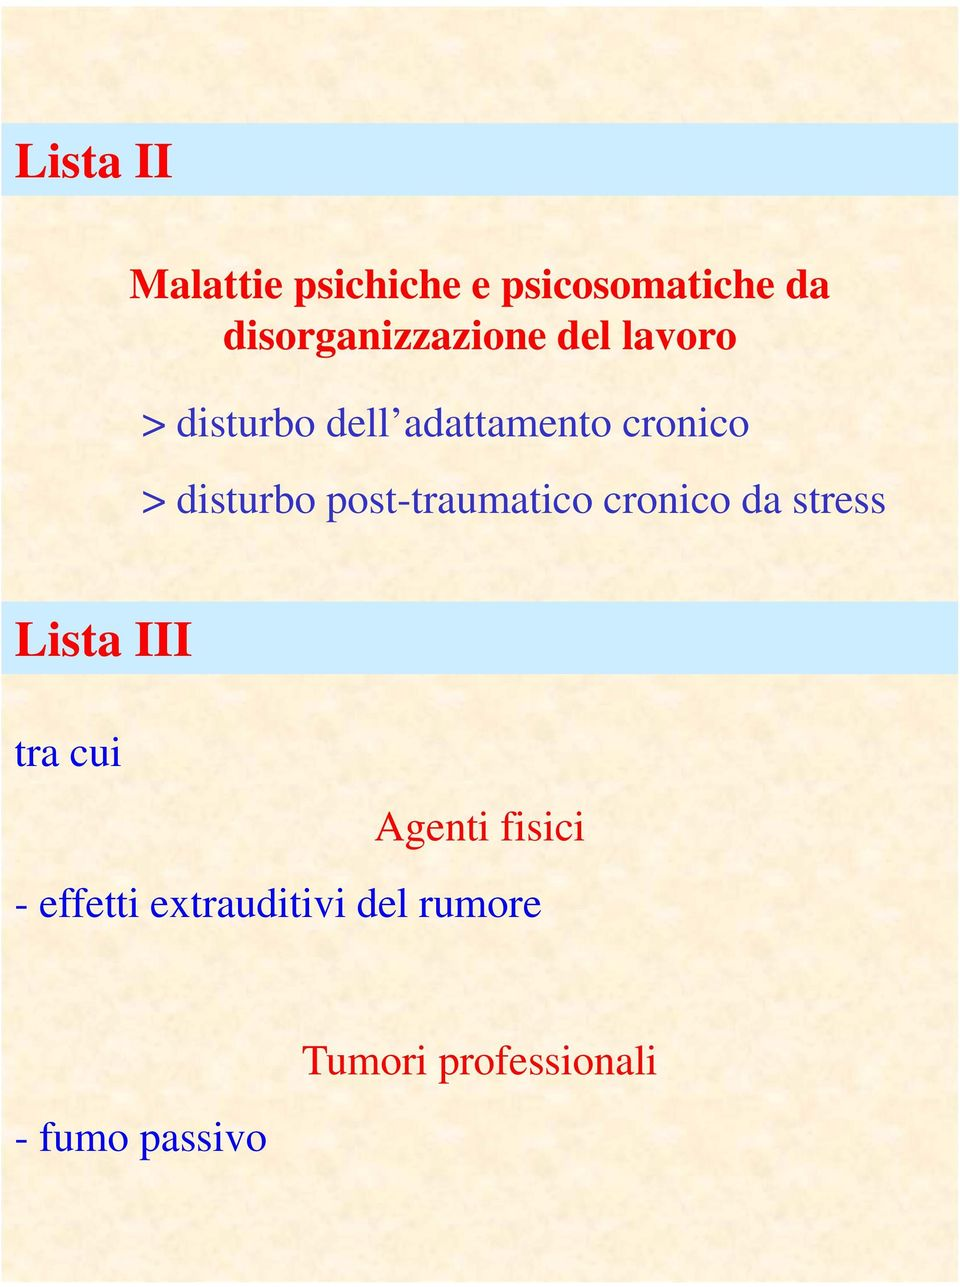 > disturbo post-traumatico cronico da stress Lista III tra cui